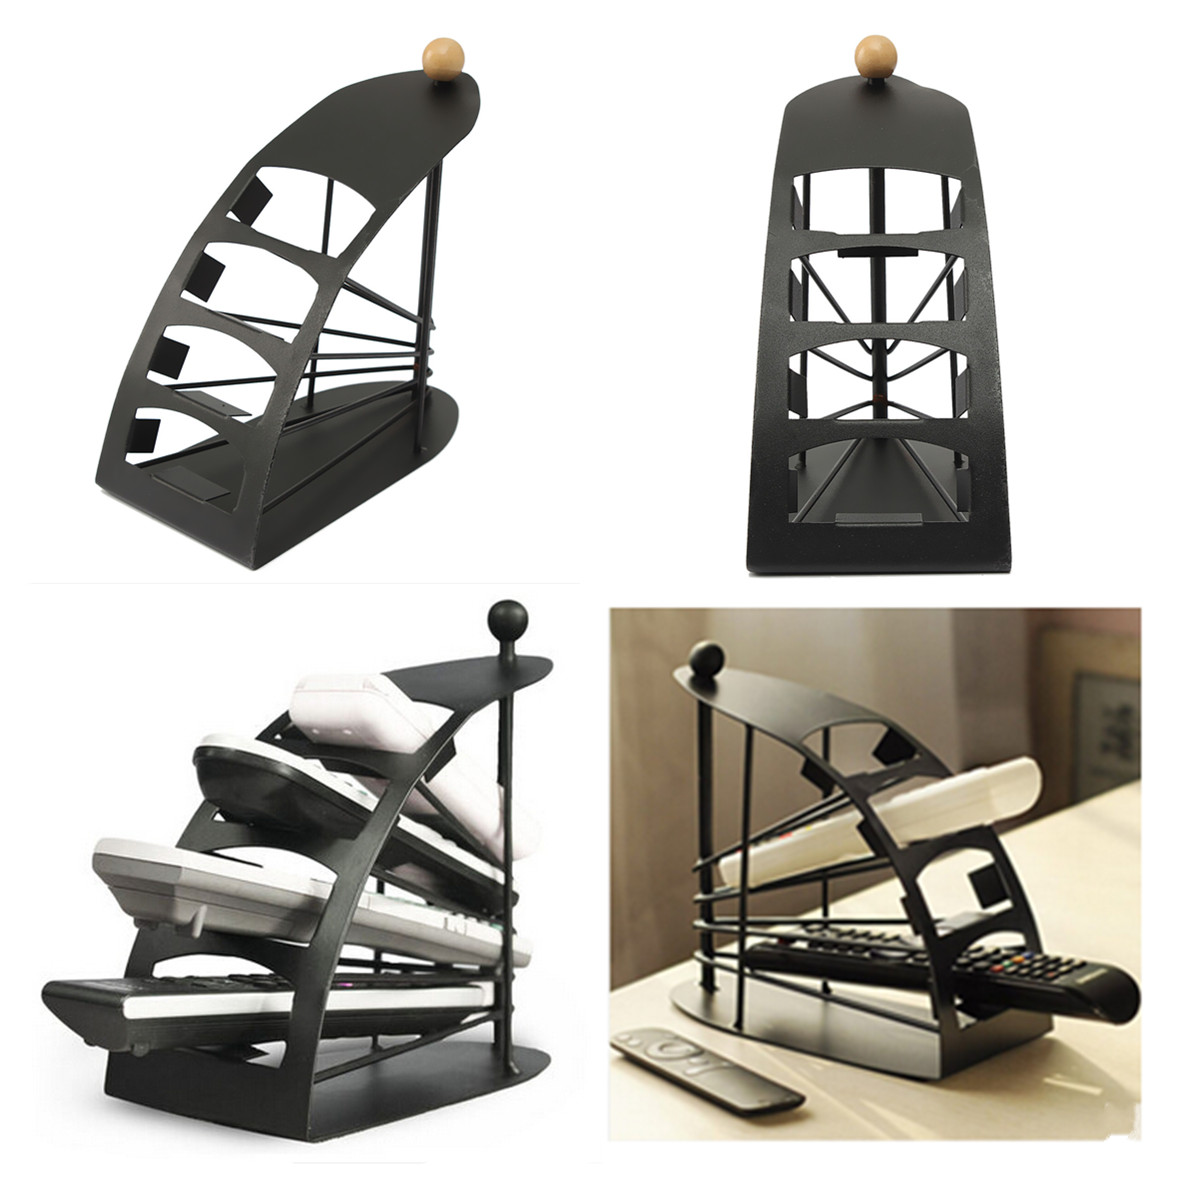 Chair Organizer Remote Control Caddy Organizer Tv Dvd Vcd Holder Stand